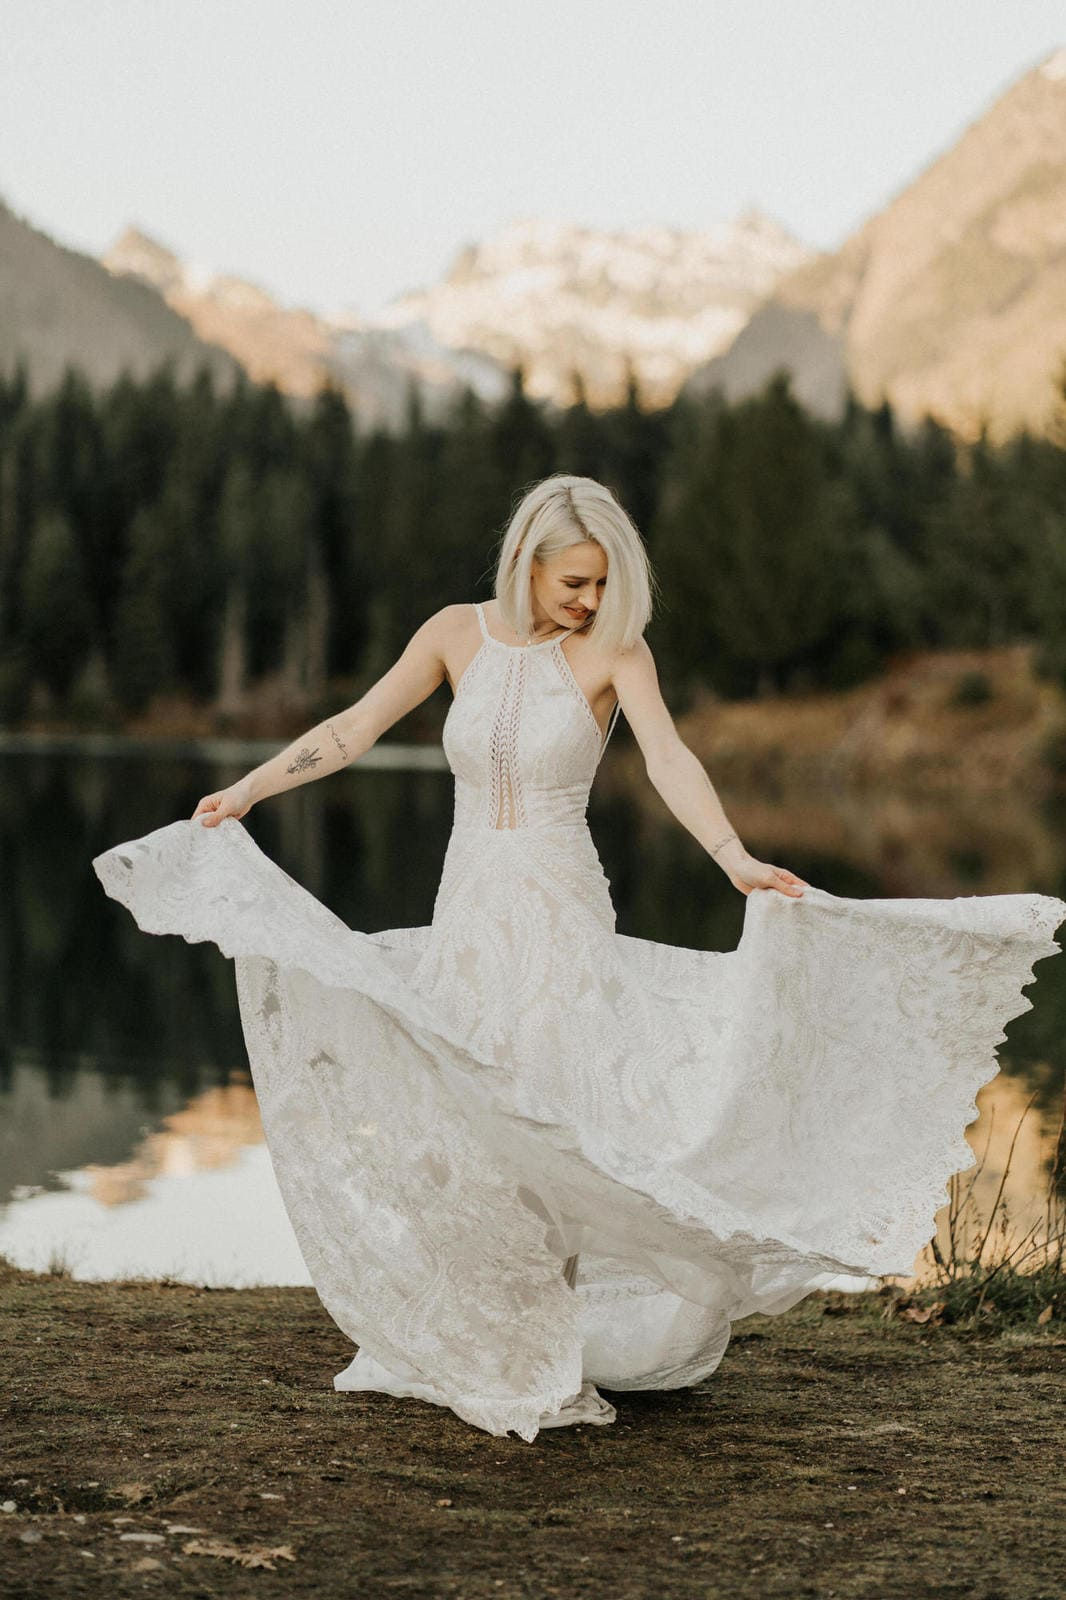 bride twirling in Essense of Australia dress.